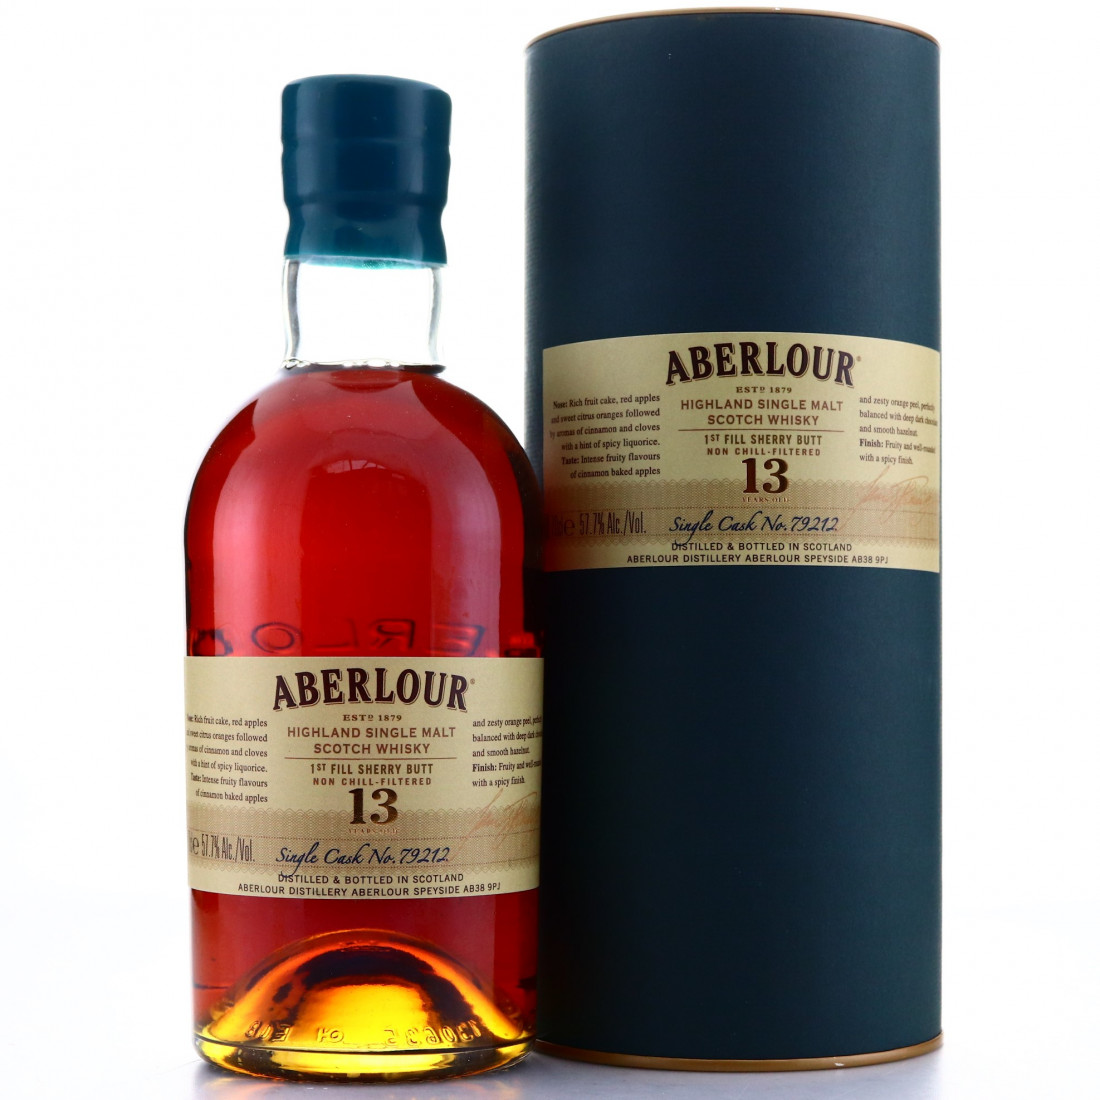 Aberlour 13 Year Old Single Sherry Cask #79212